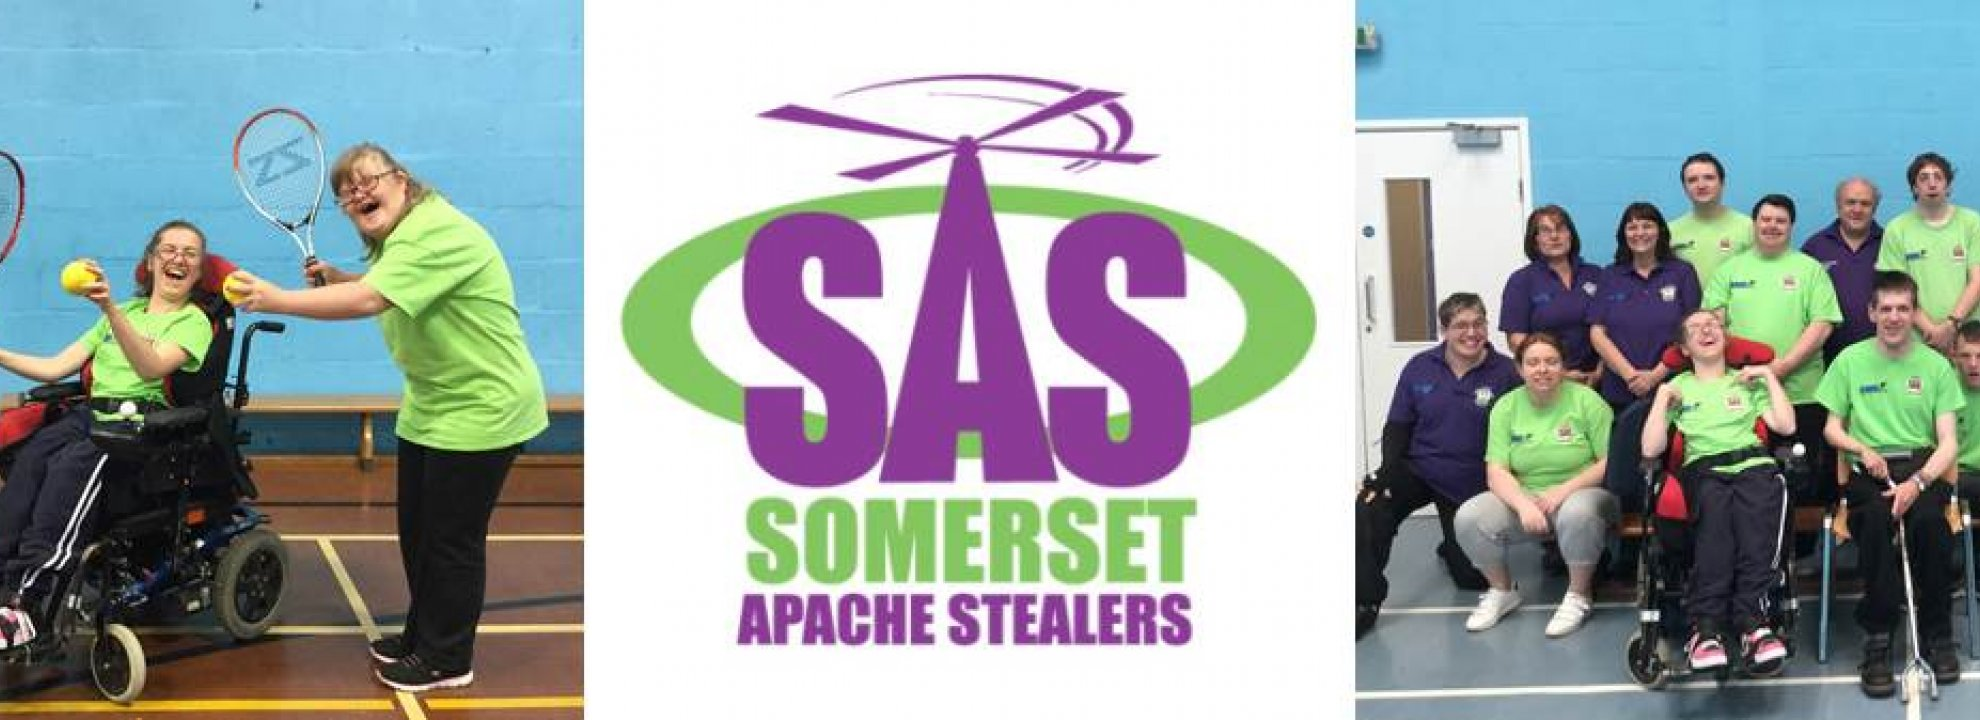 Somerset Apache Stealers - Inclusive Multi-Sports Club (Yeovil) Banner